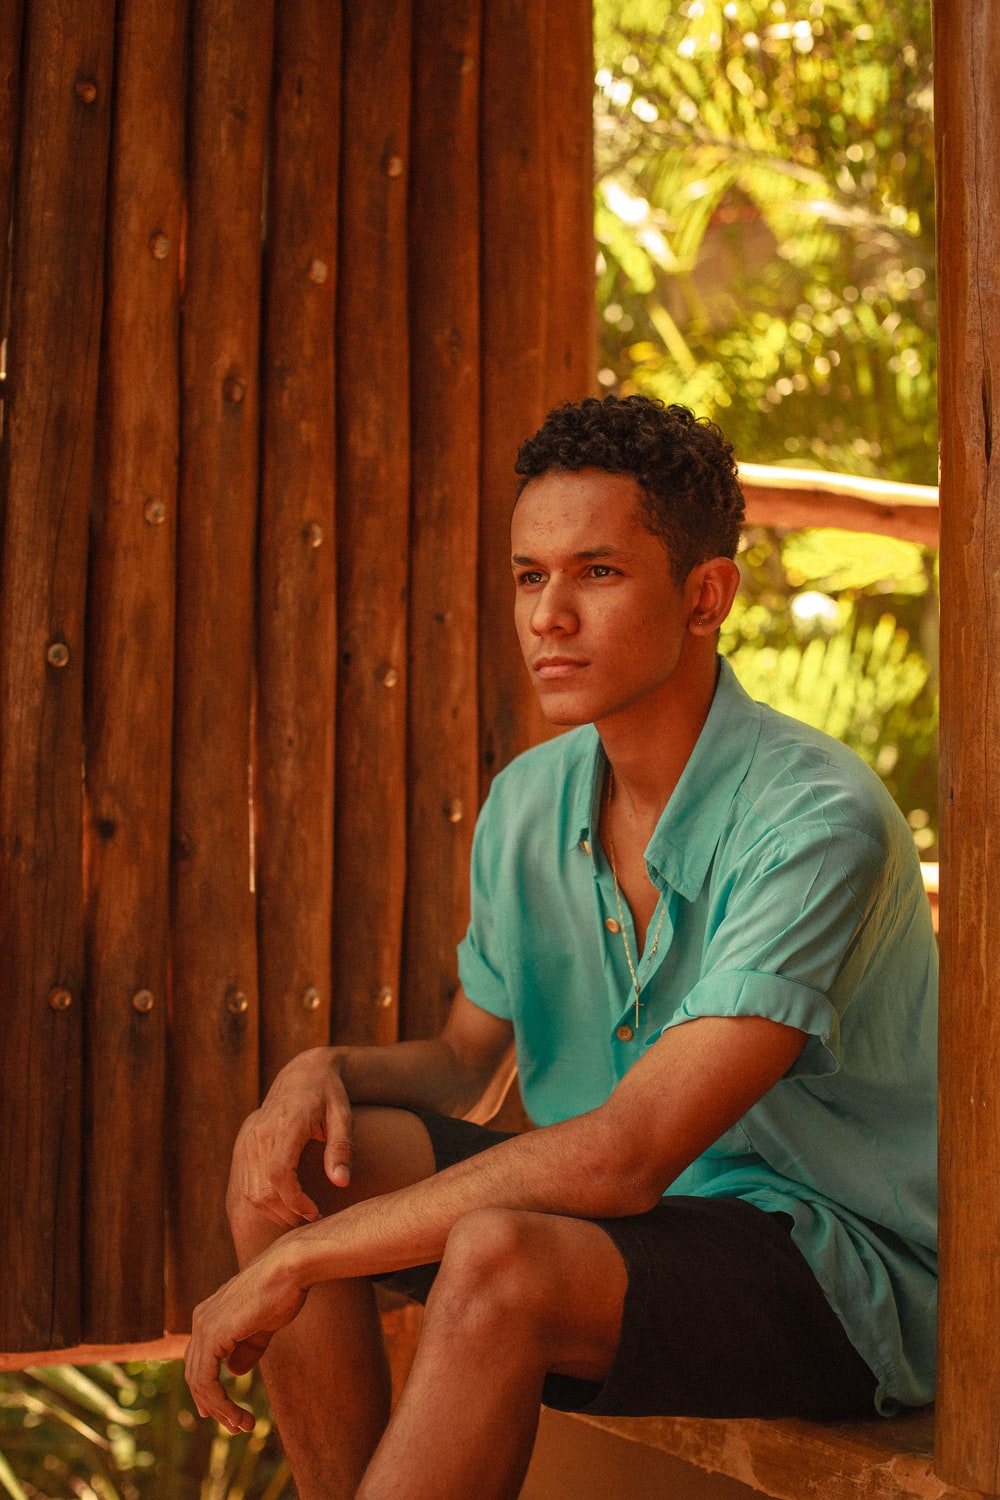 man in green button up shirt sitting on brown wooden bench